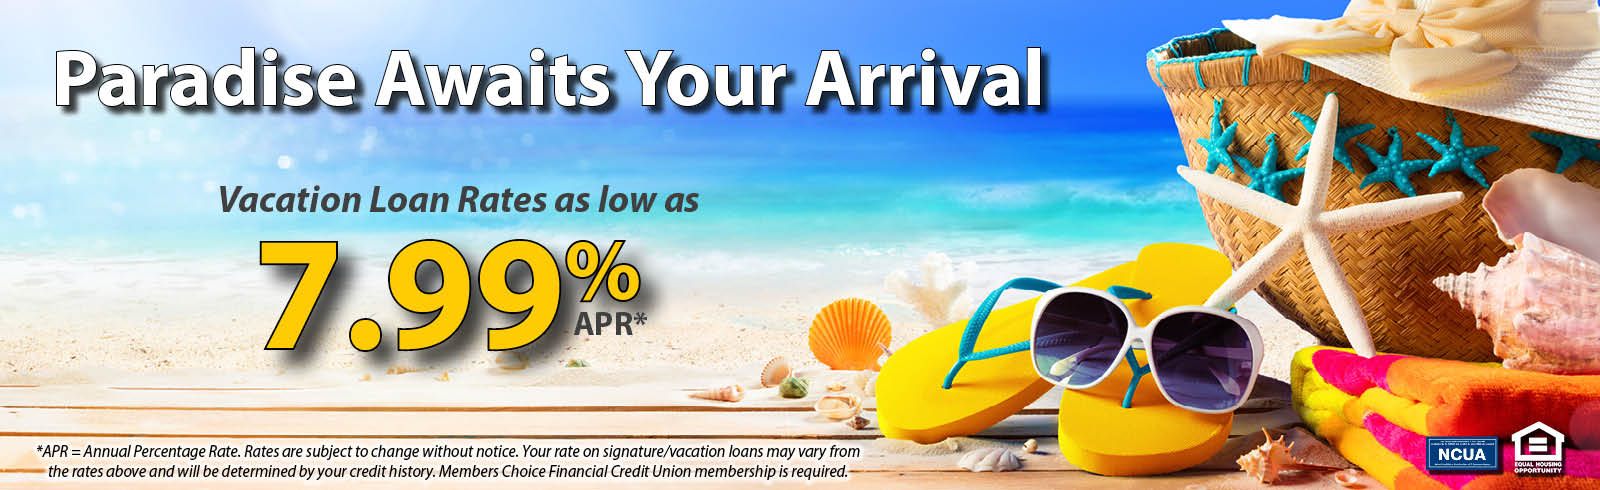 Your Paradise Awaits! Vacation Loans at Members choice.